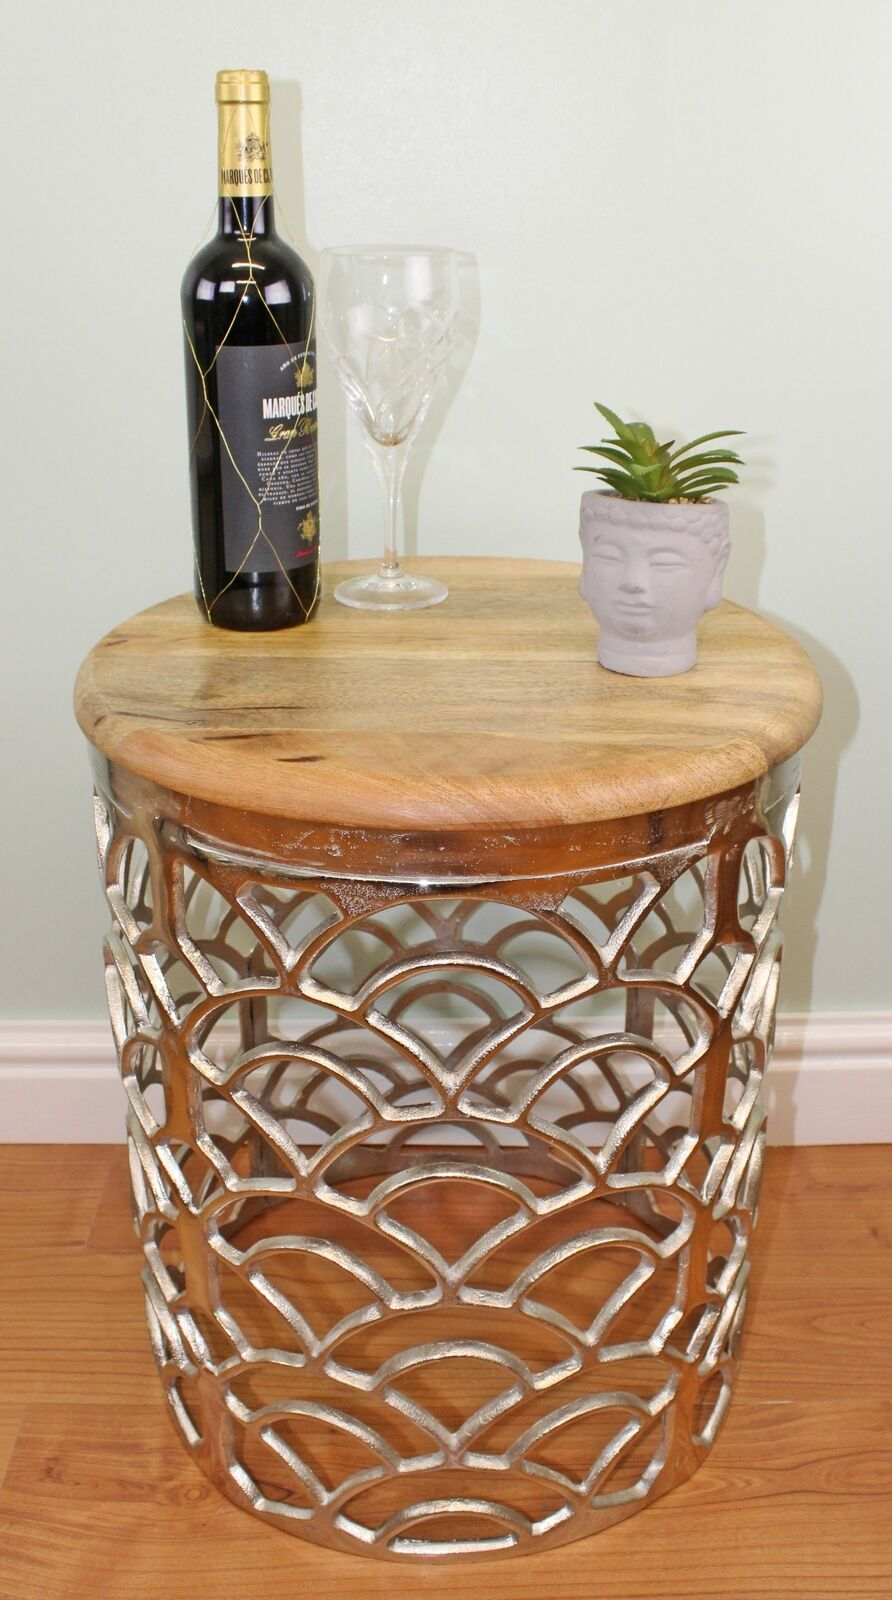 Decorative silver metal Topside table with a wooden top